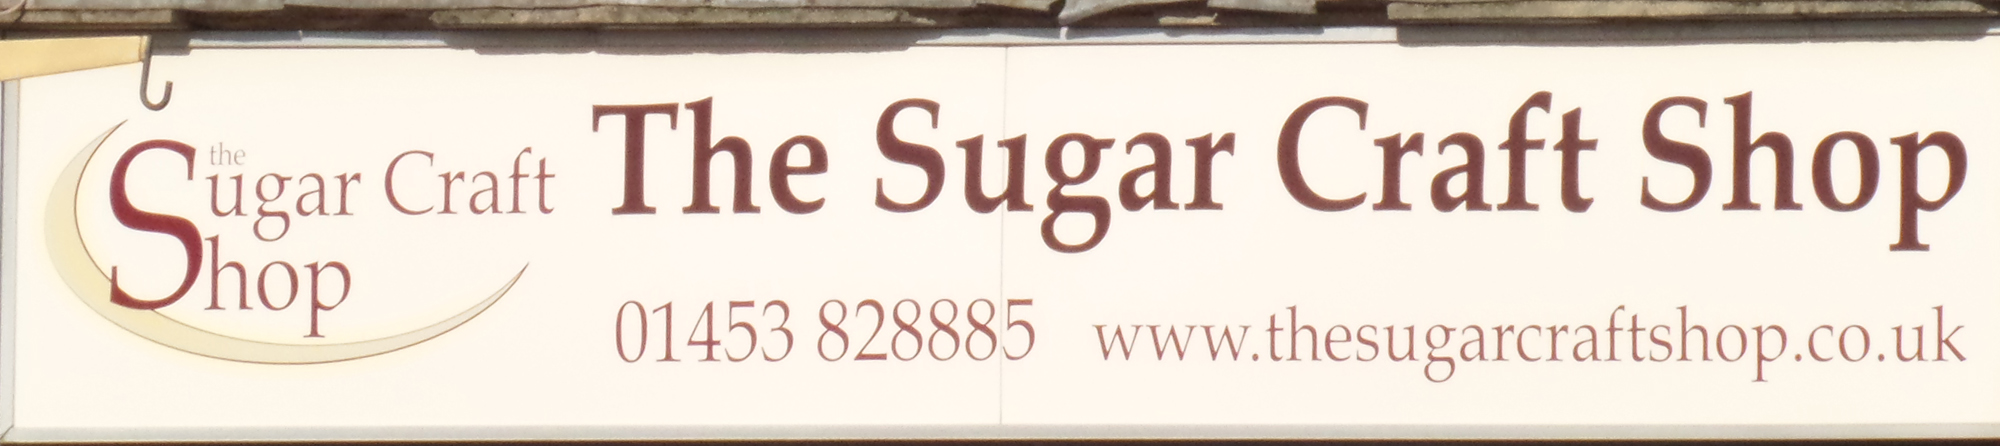 Sugar Craft Shop